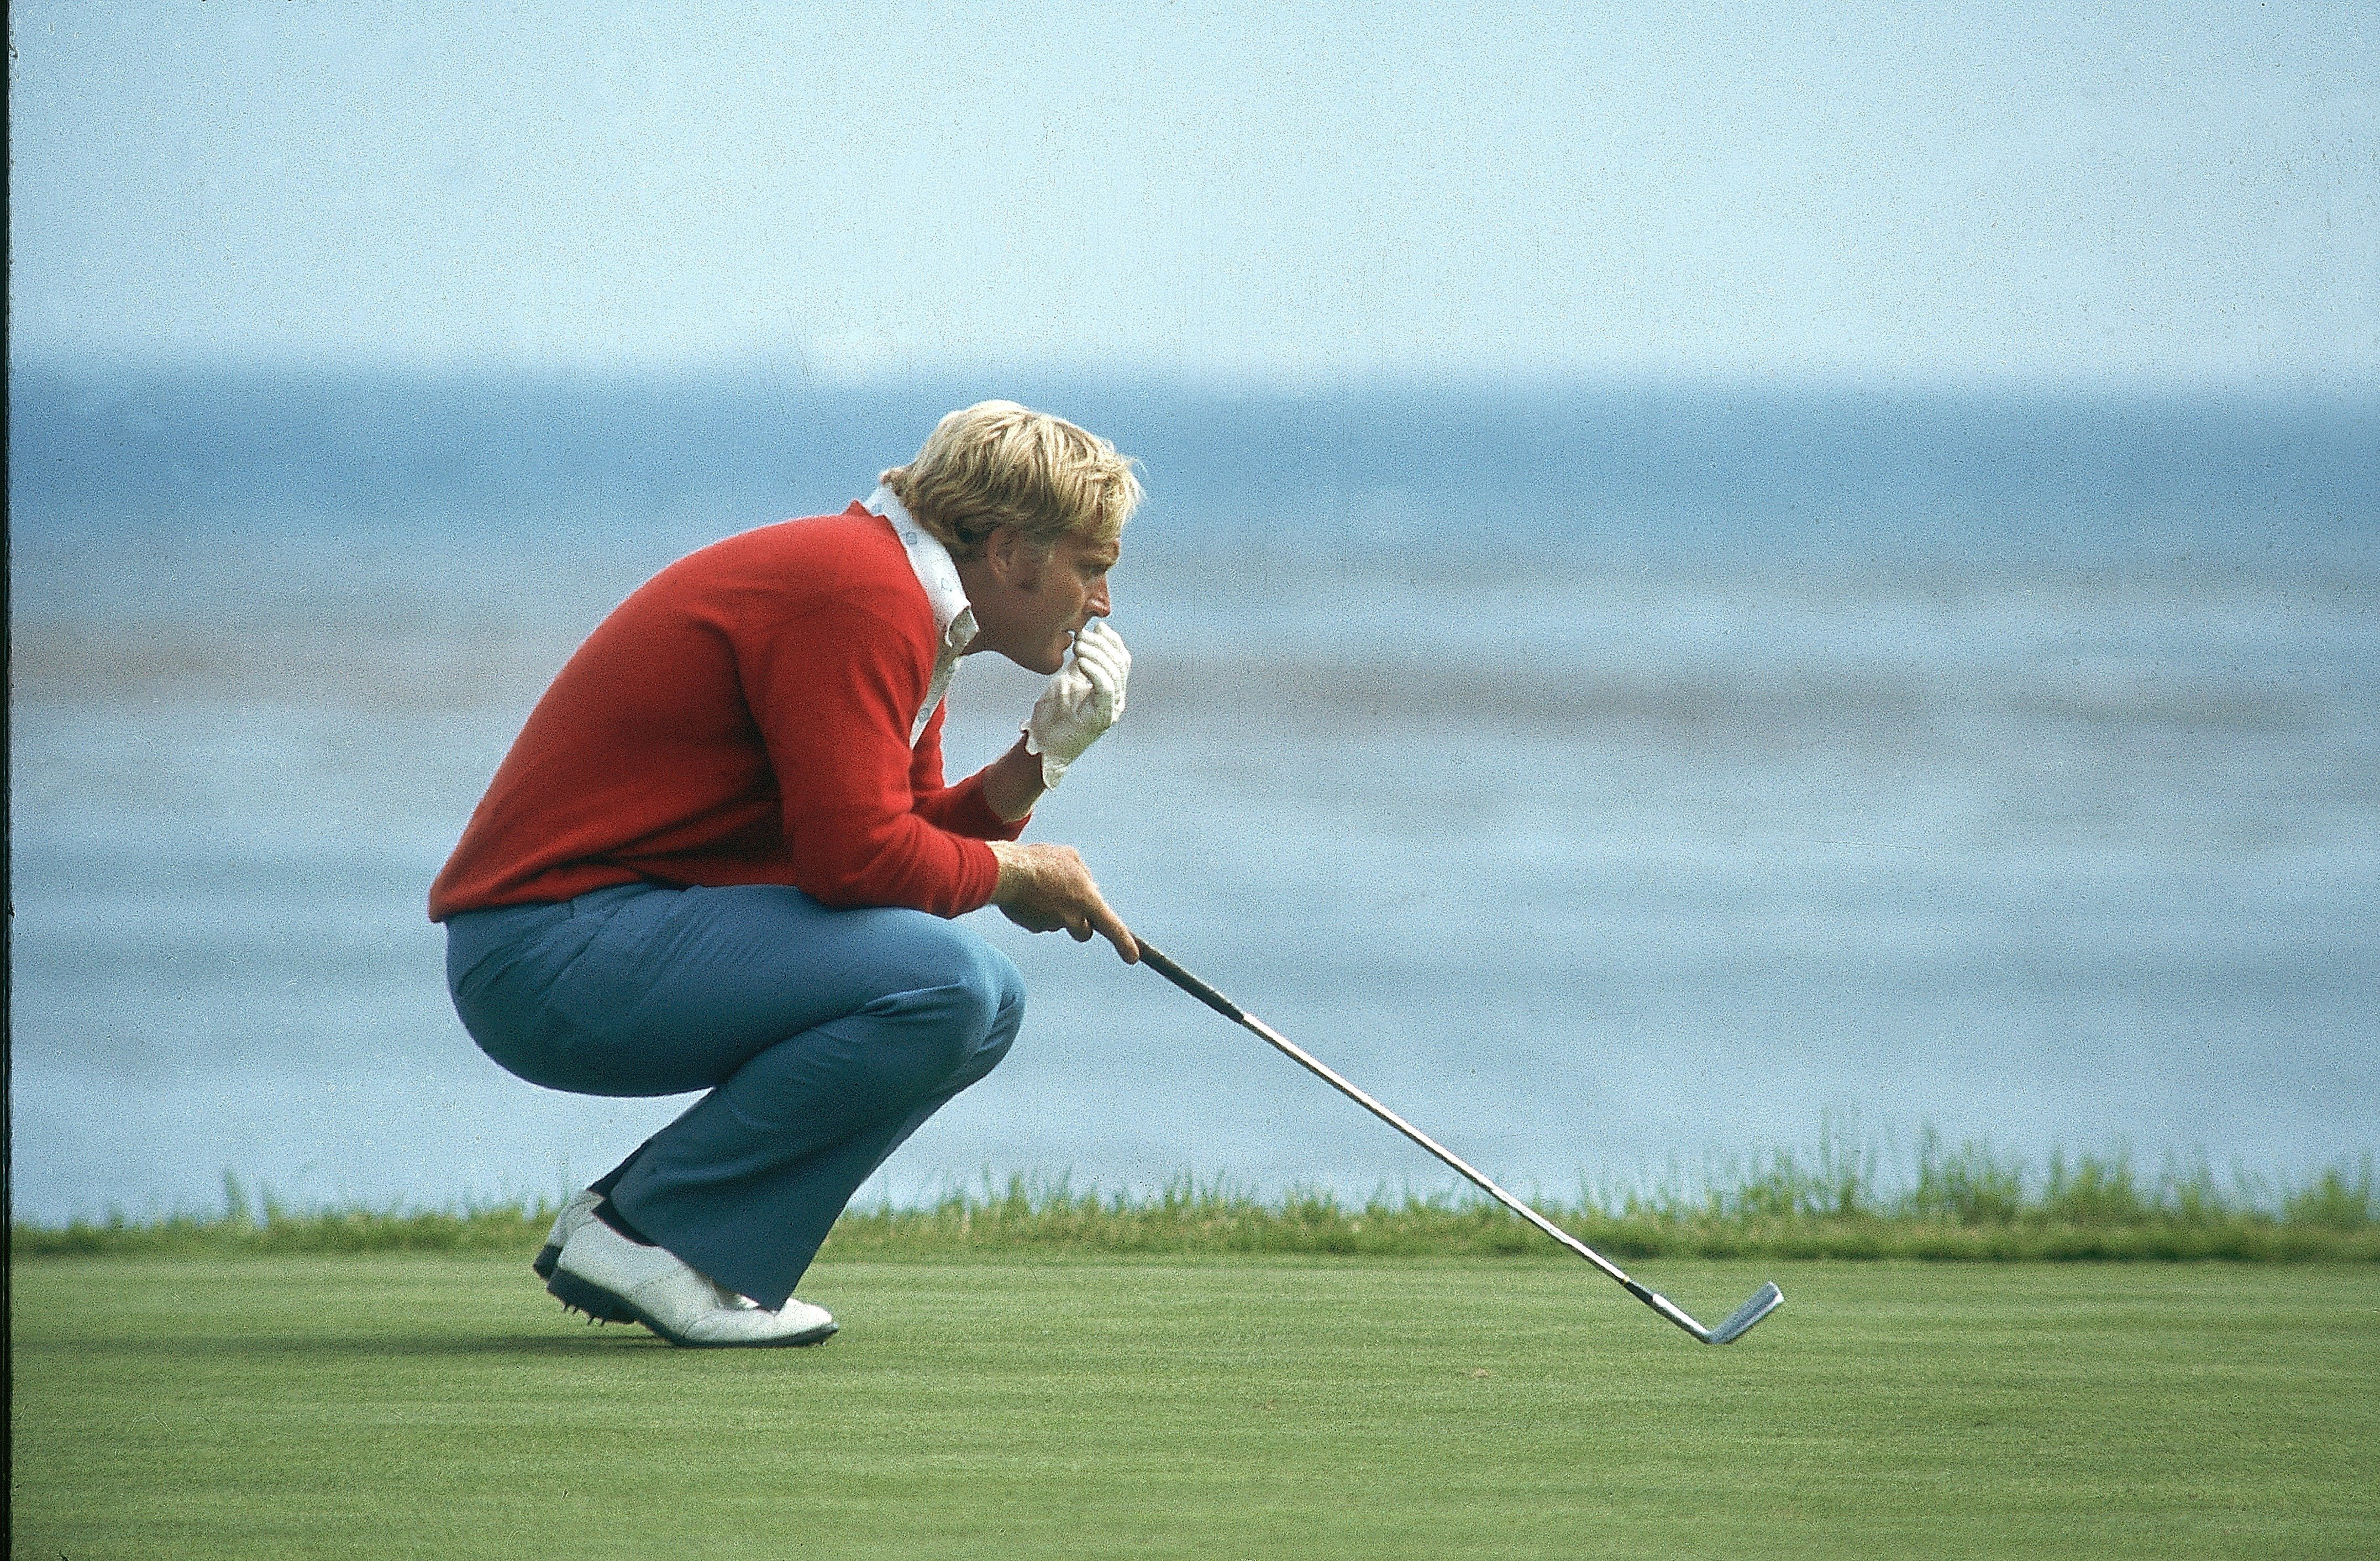 Jack Nicklaus at the 1972 U.S. Open at Pebble Beach.